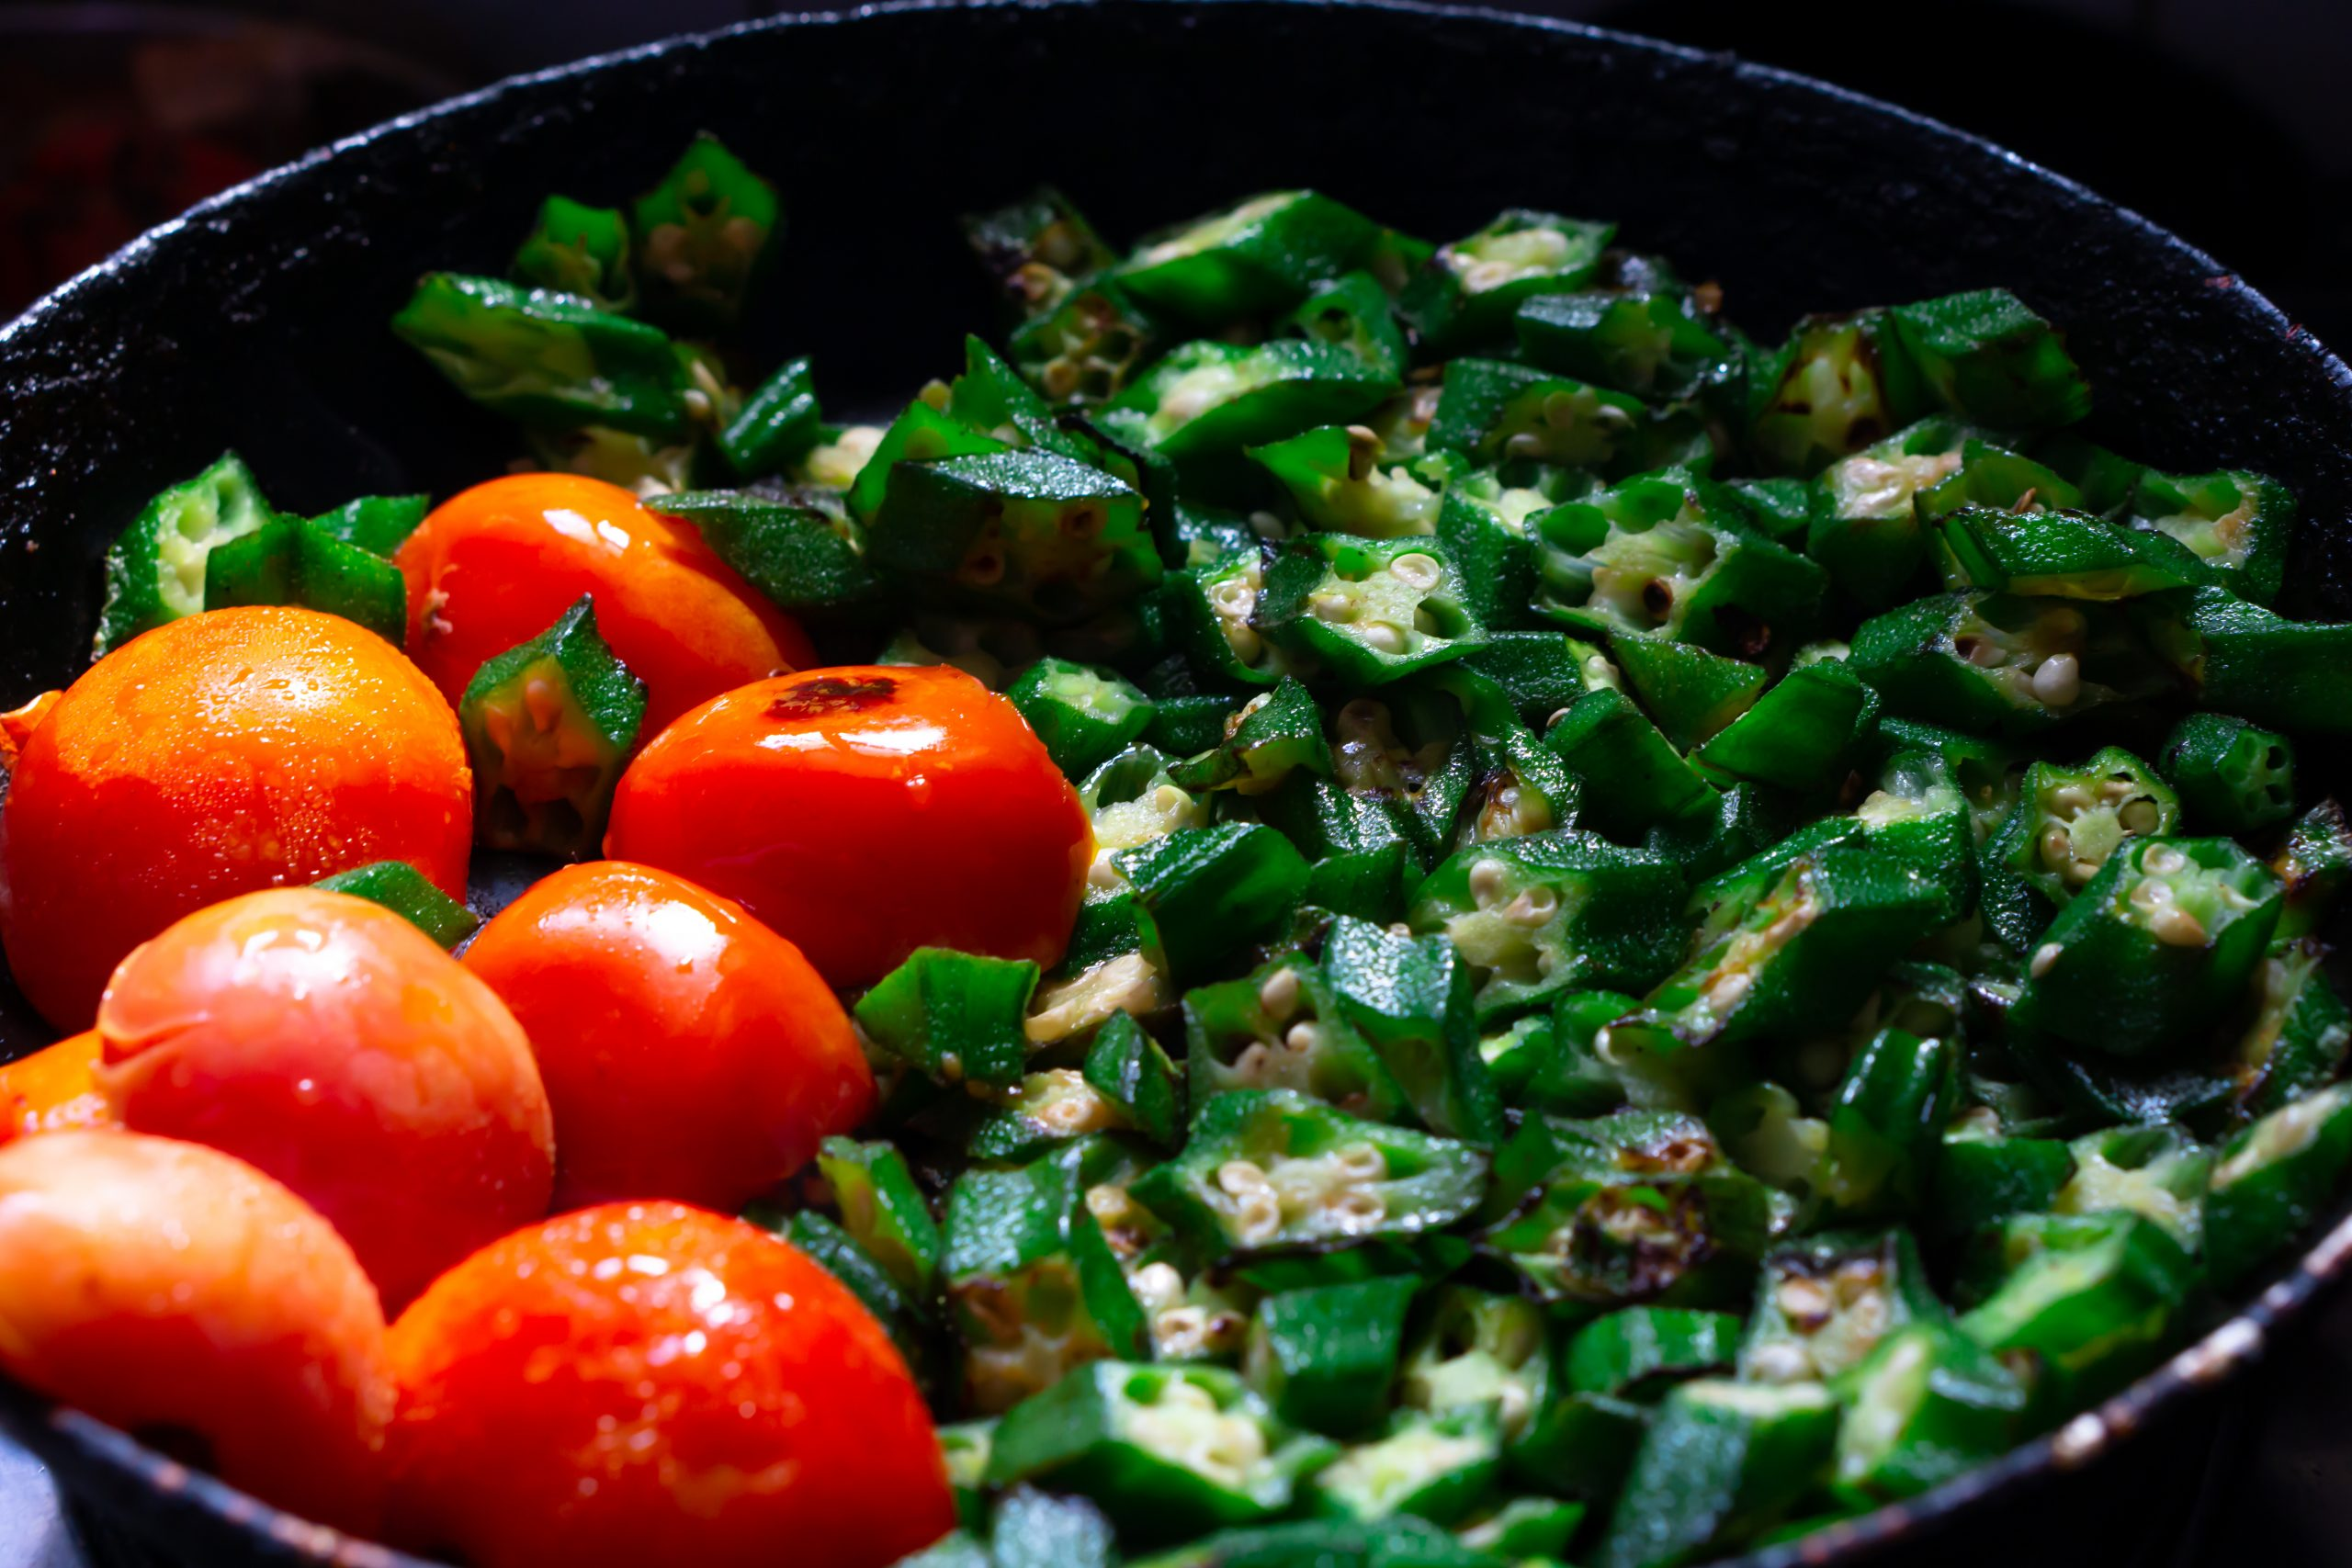 okra and tomatoes in a pan